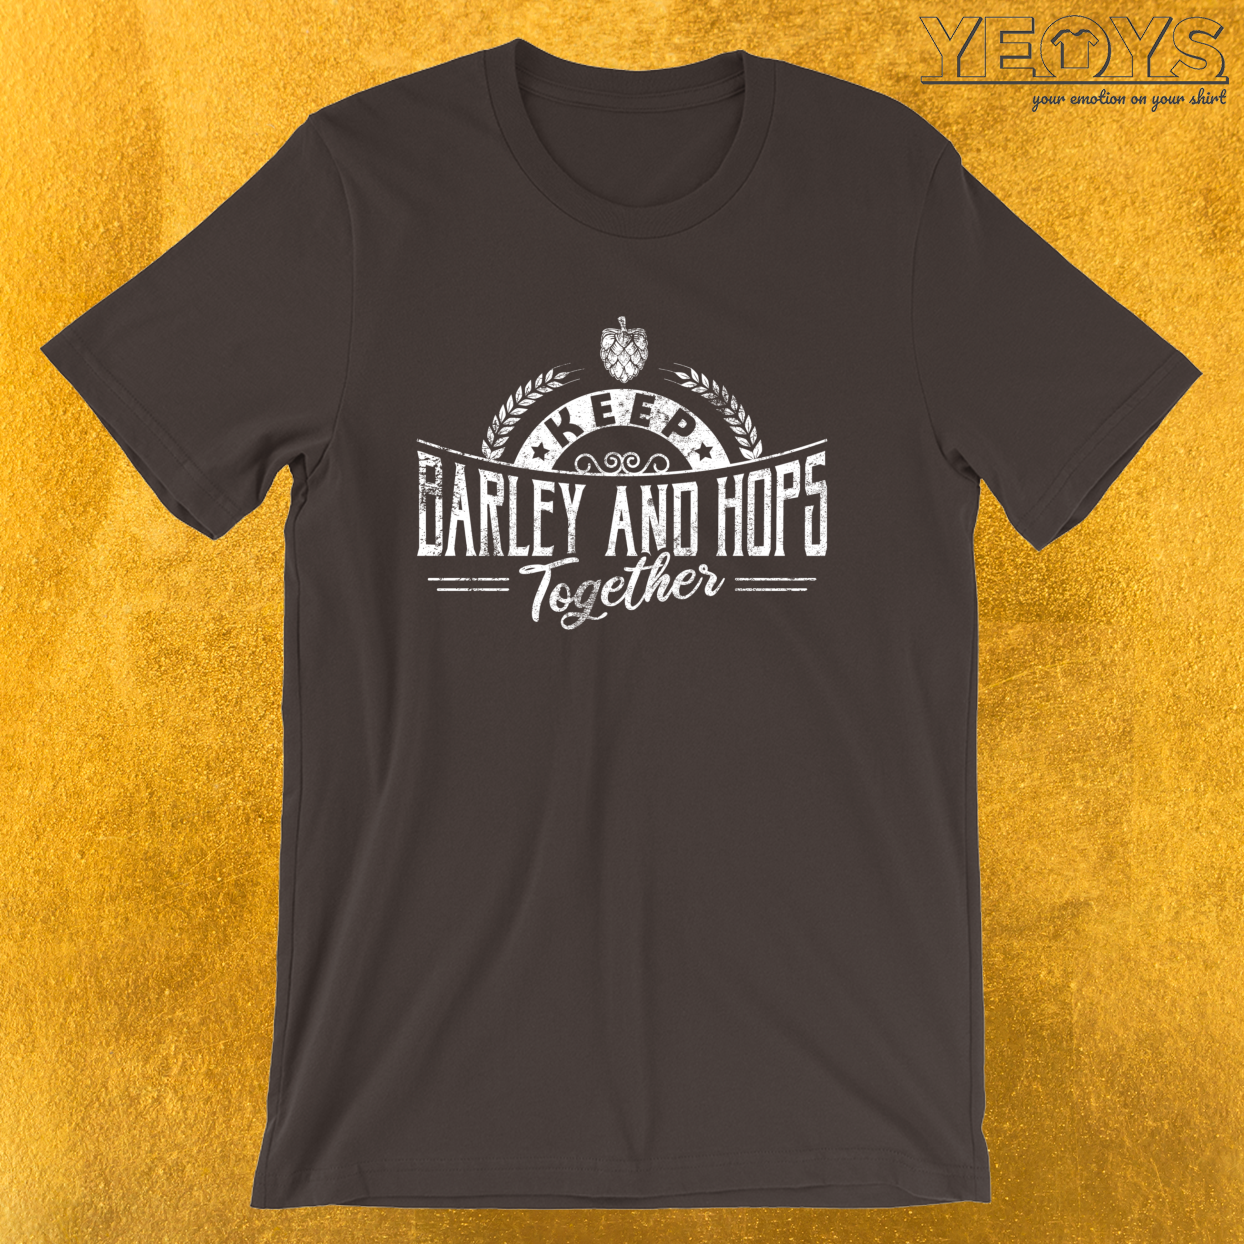 Keep Barley And Hops Together – Reinheitsgebot Tee